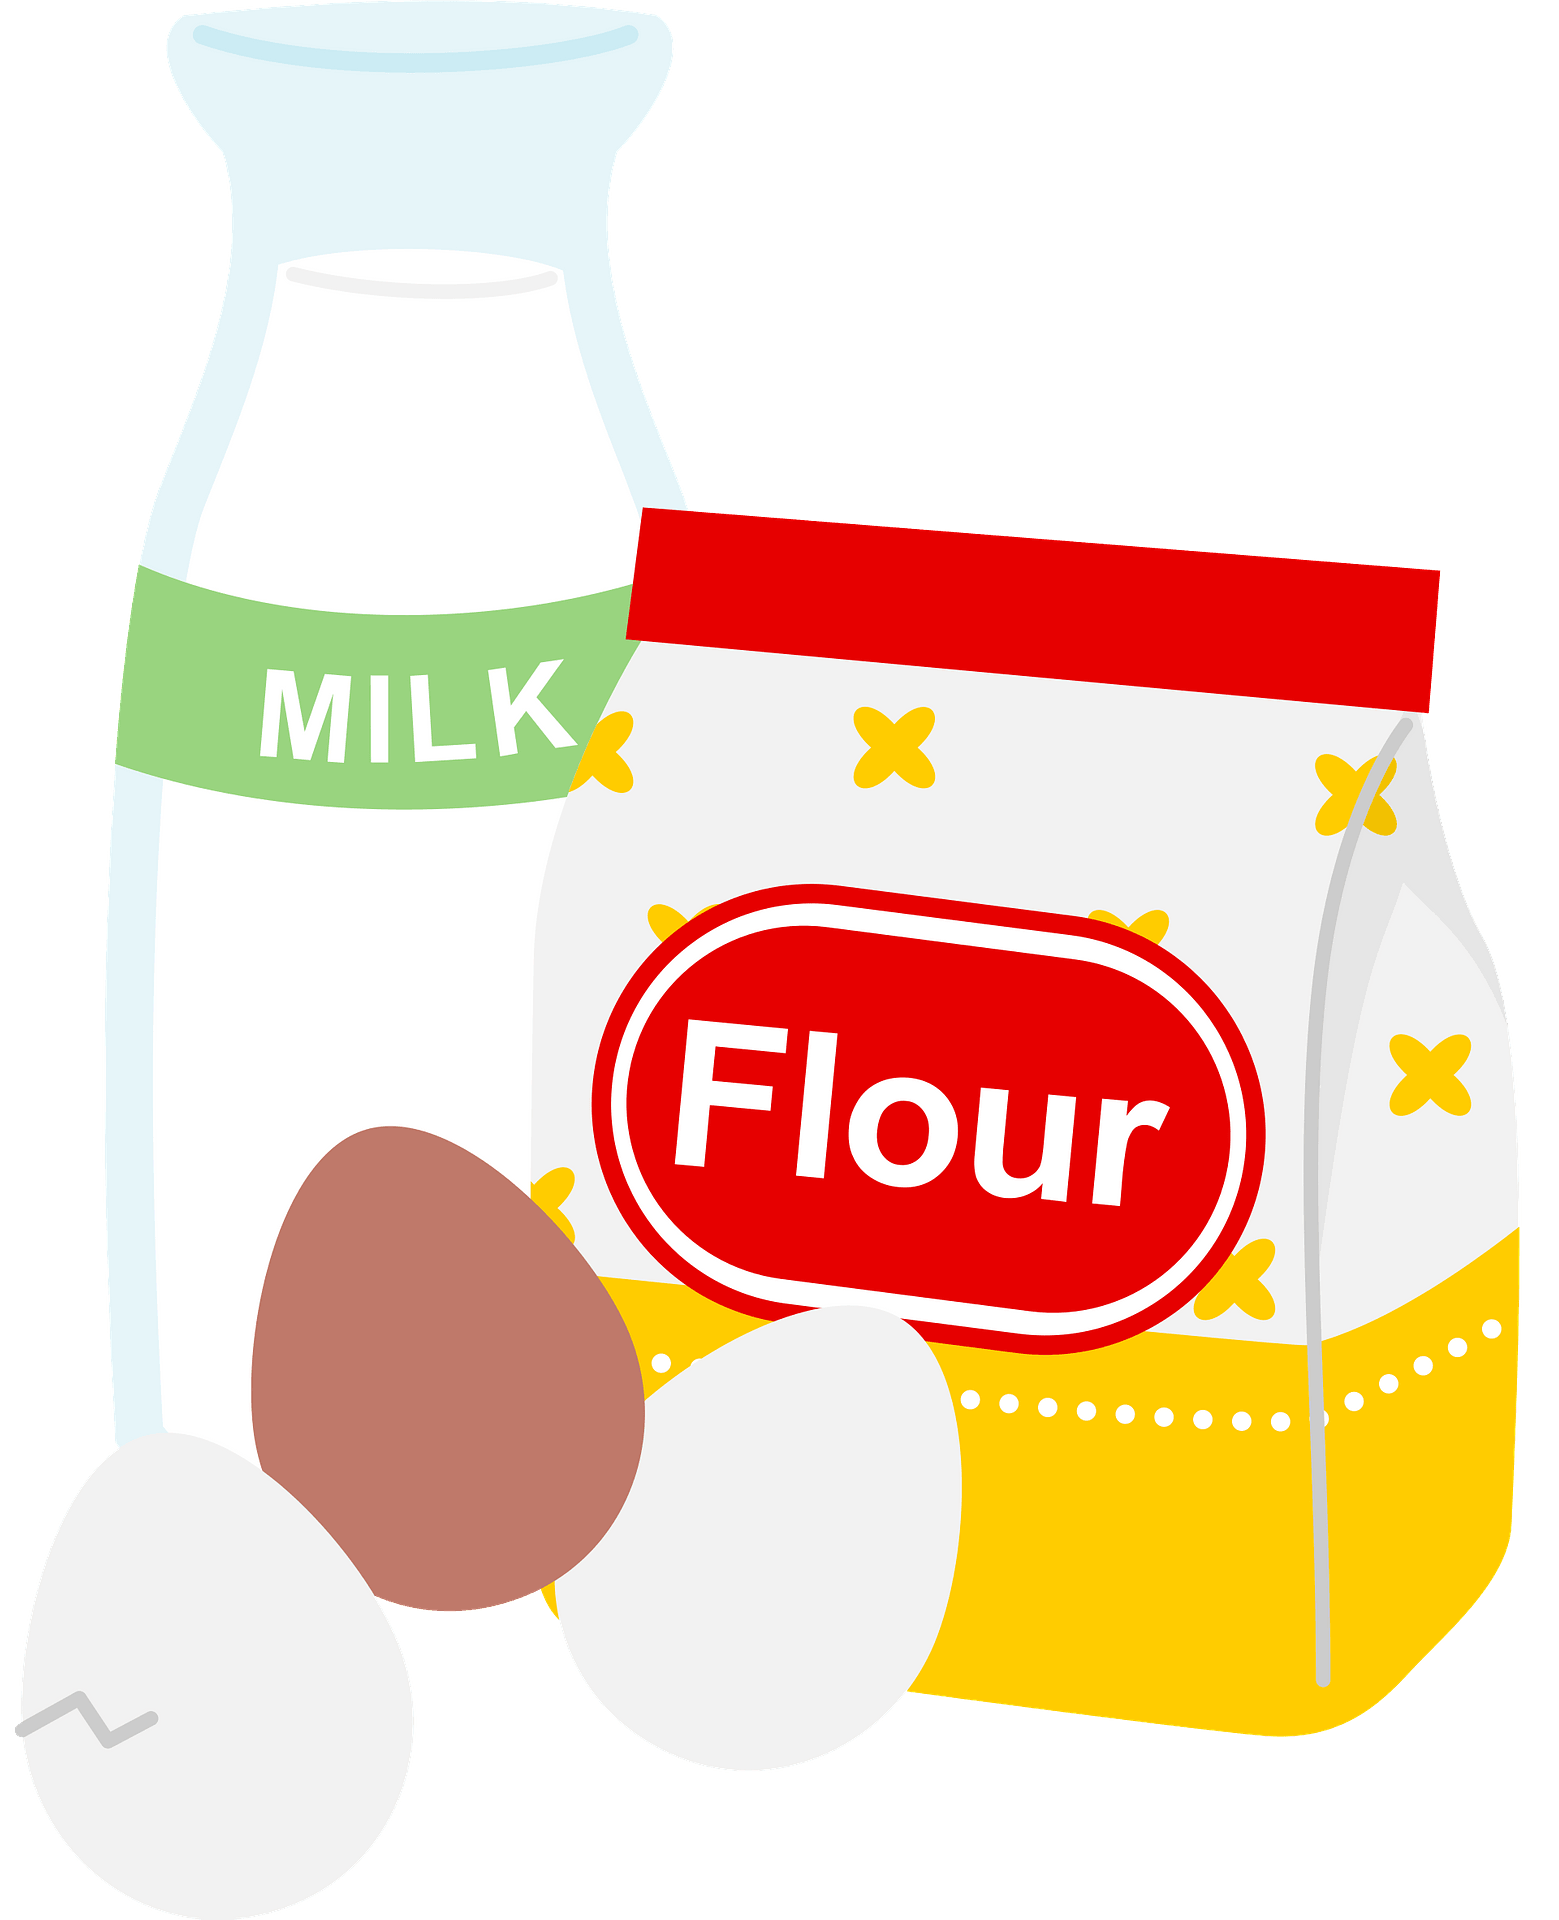 flour egg and milk clipart free download transparent png creazilla flour egg and milk clipart free